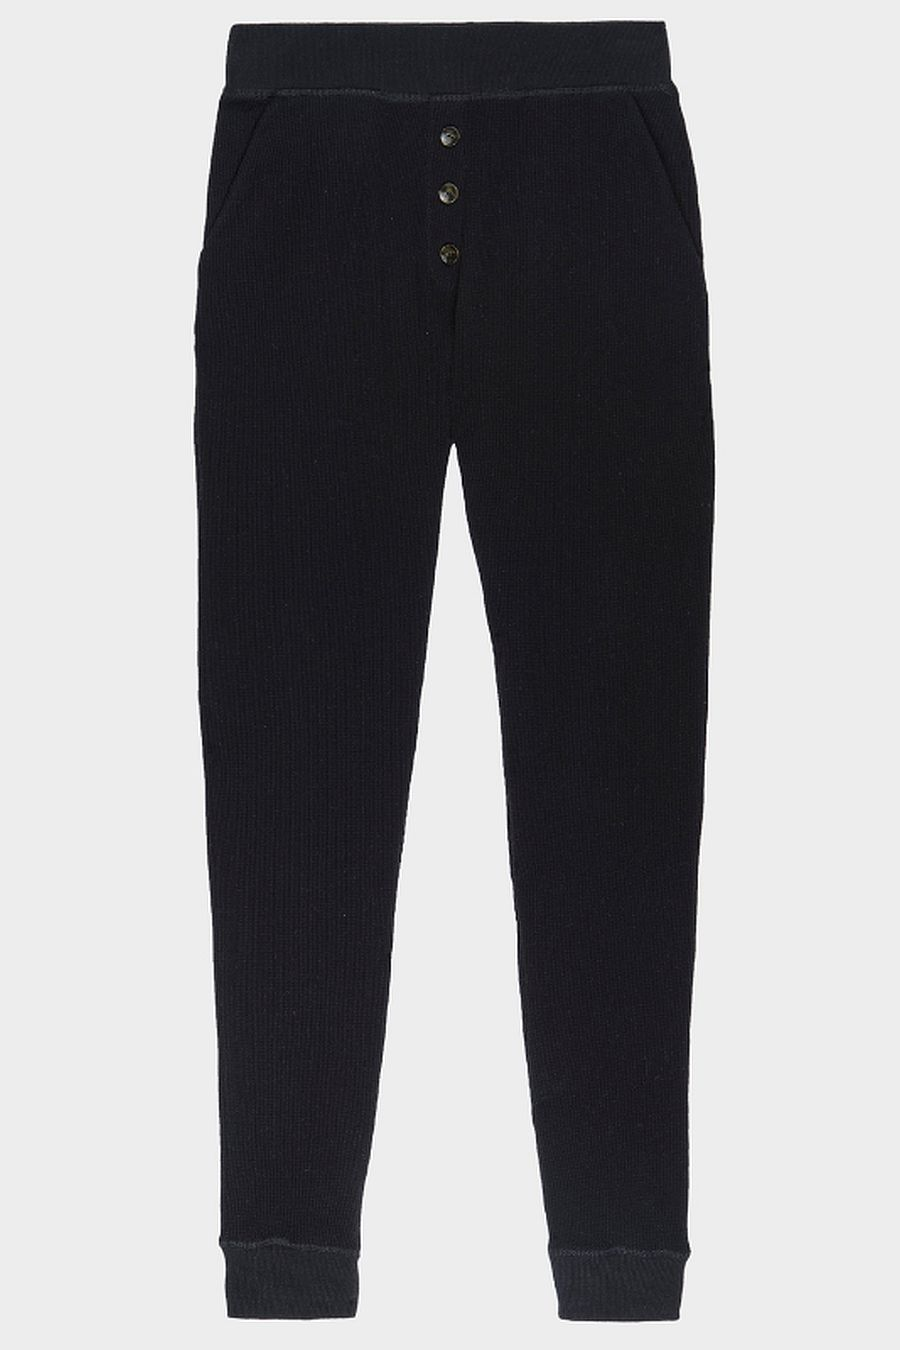 DONNI. Thermal Henley Sweatpant - Black